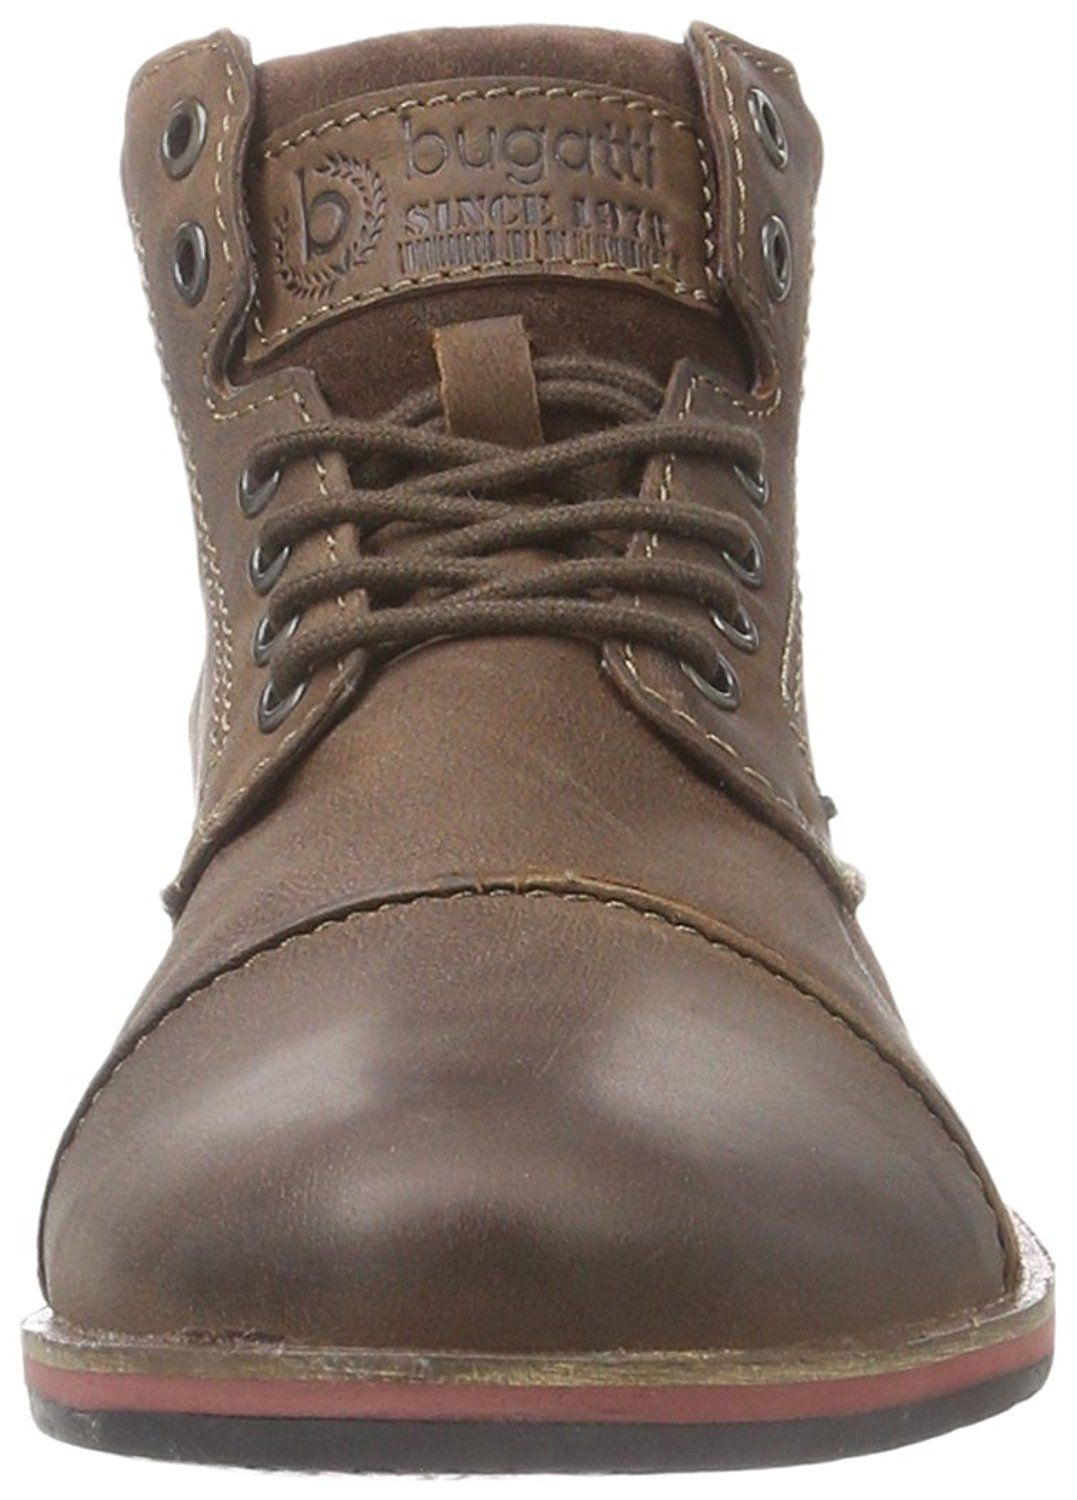 bc663eef401 Pin by Addicted To Style - Men on Boots